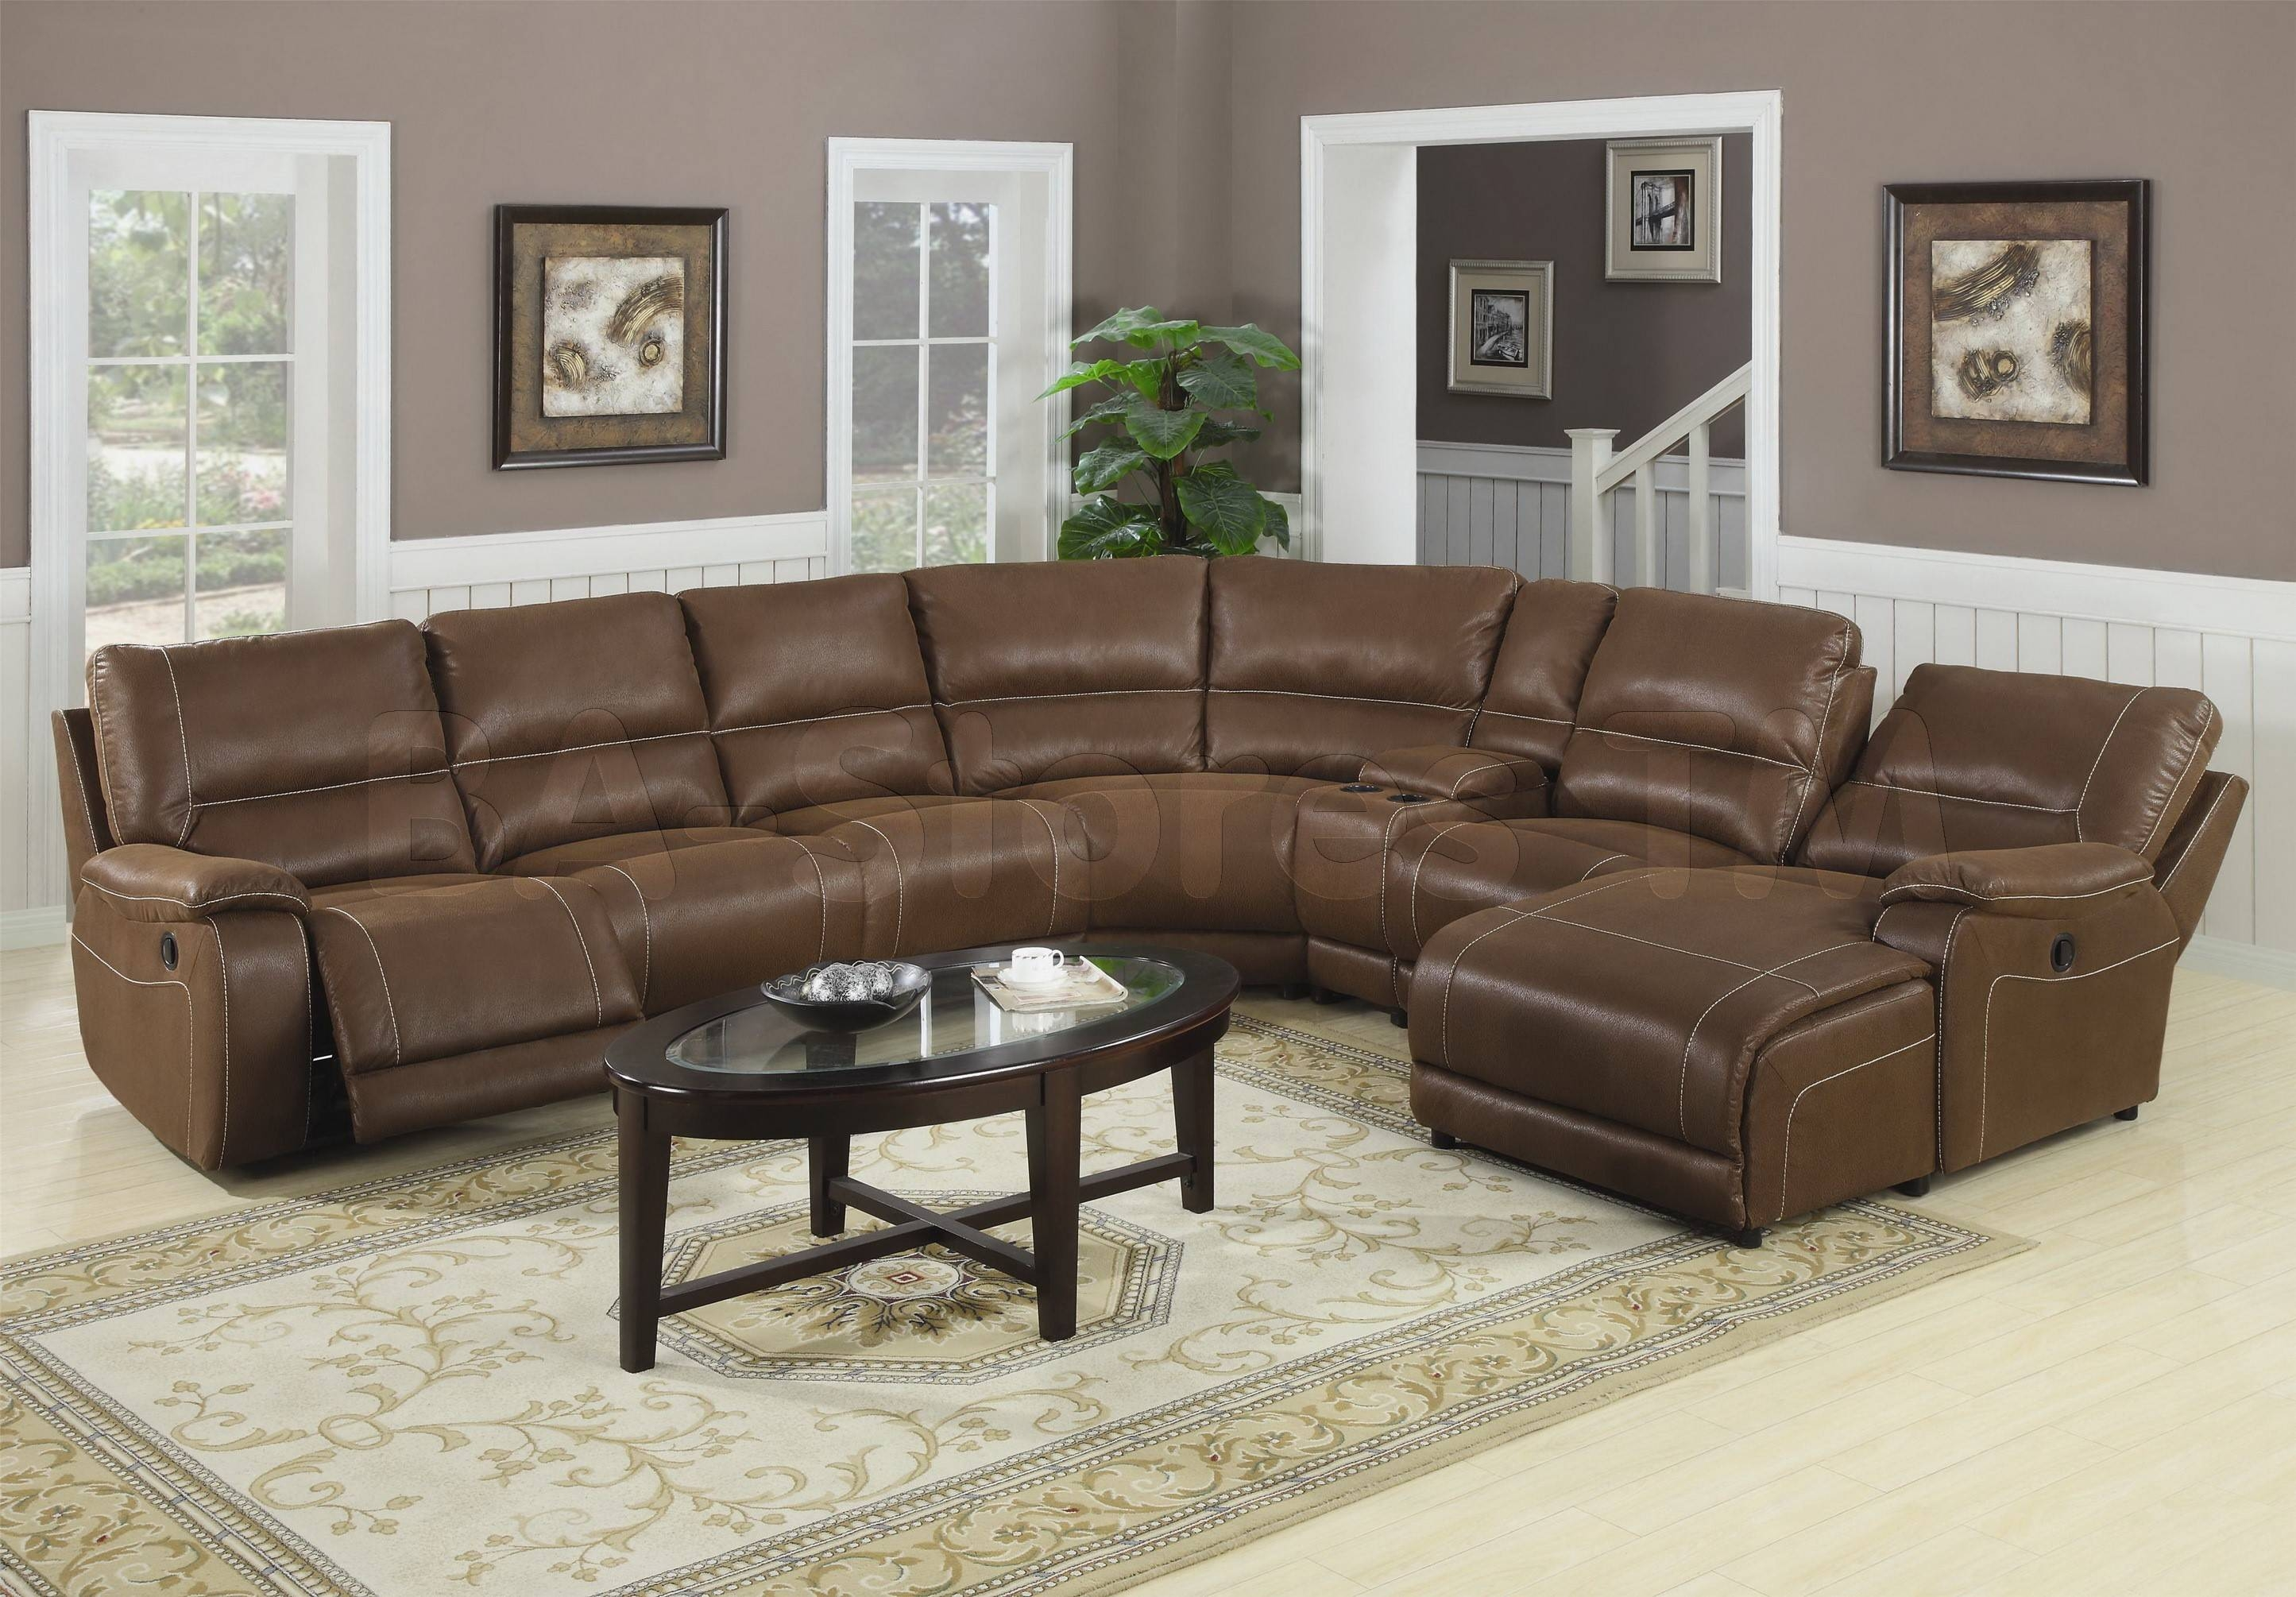 Popular Photo of Spencer Leather Sectional Sofas